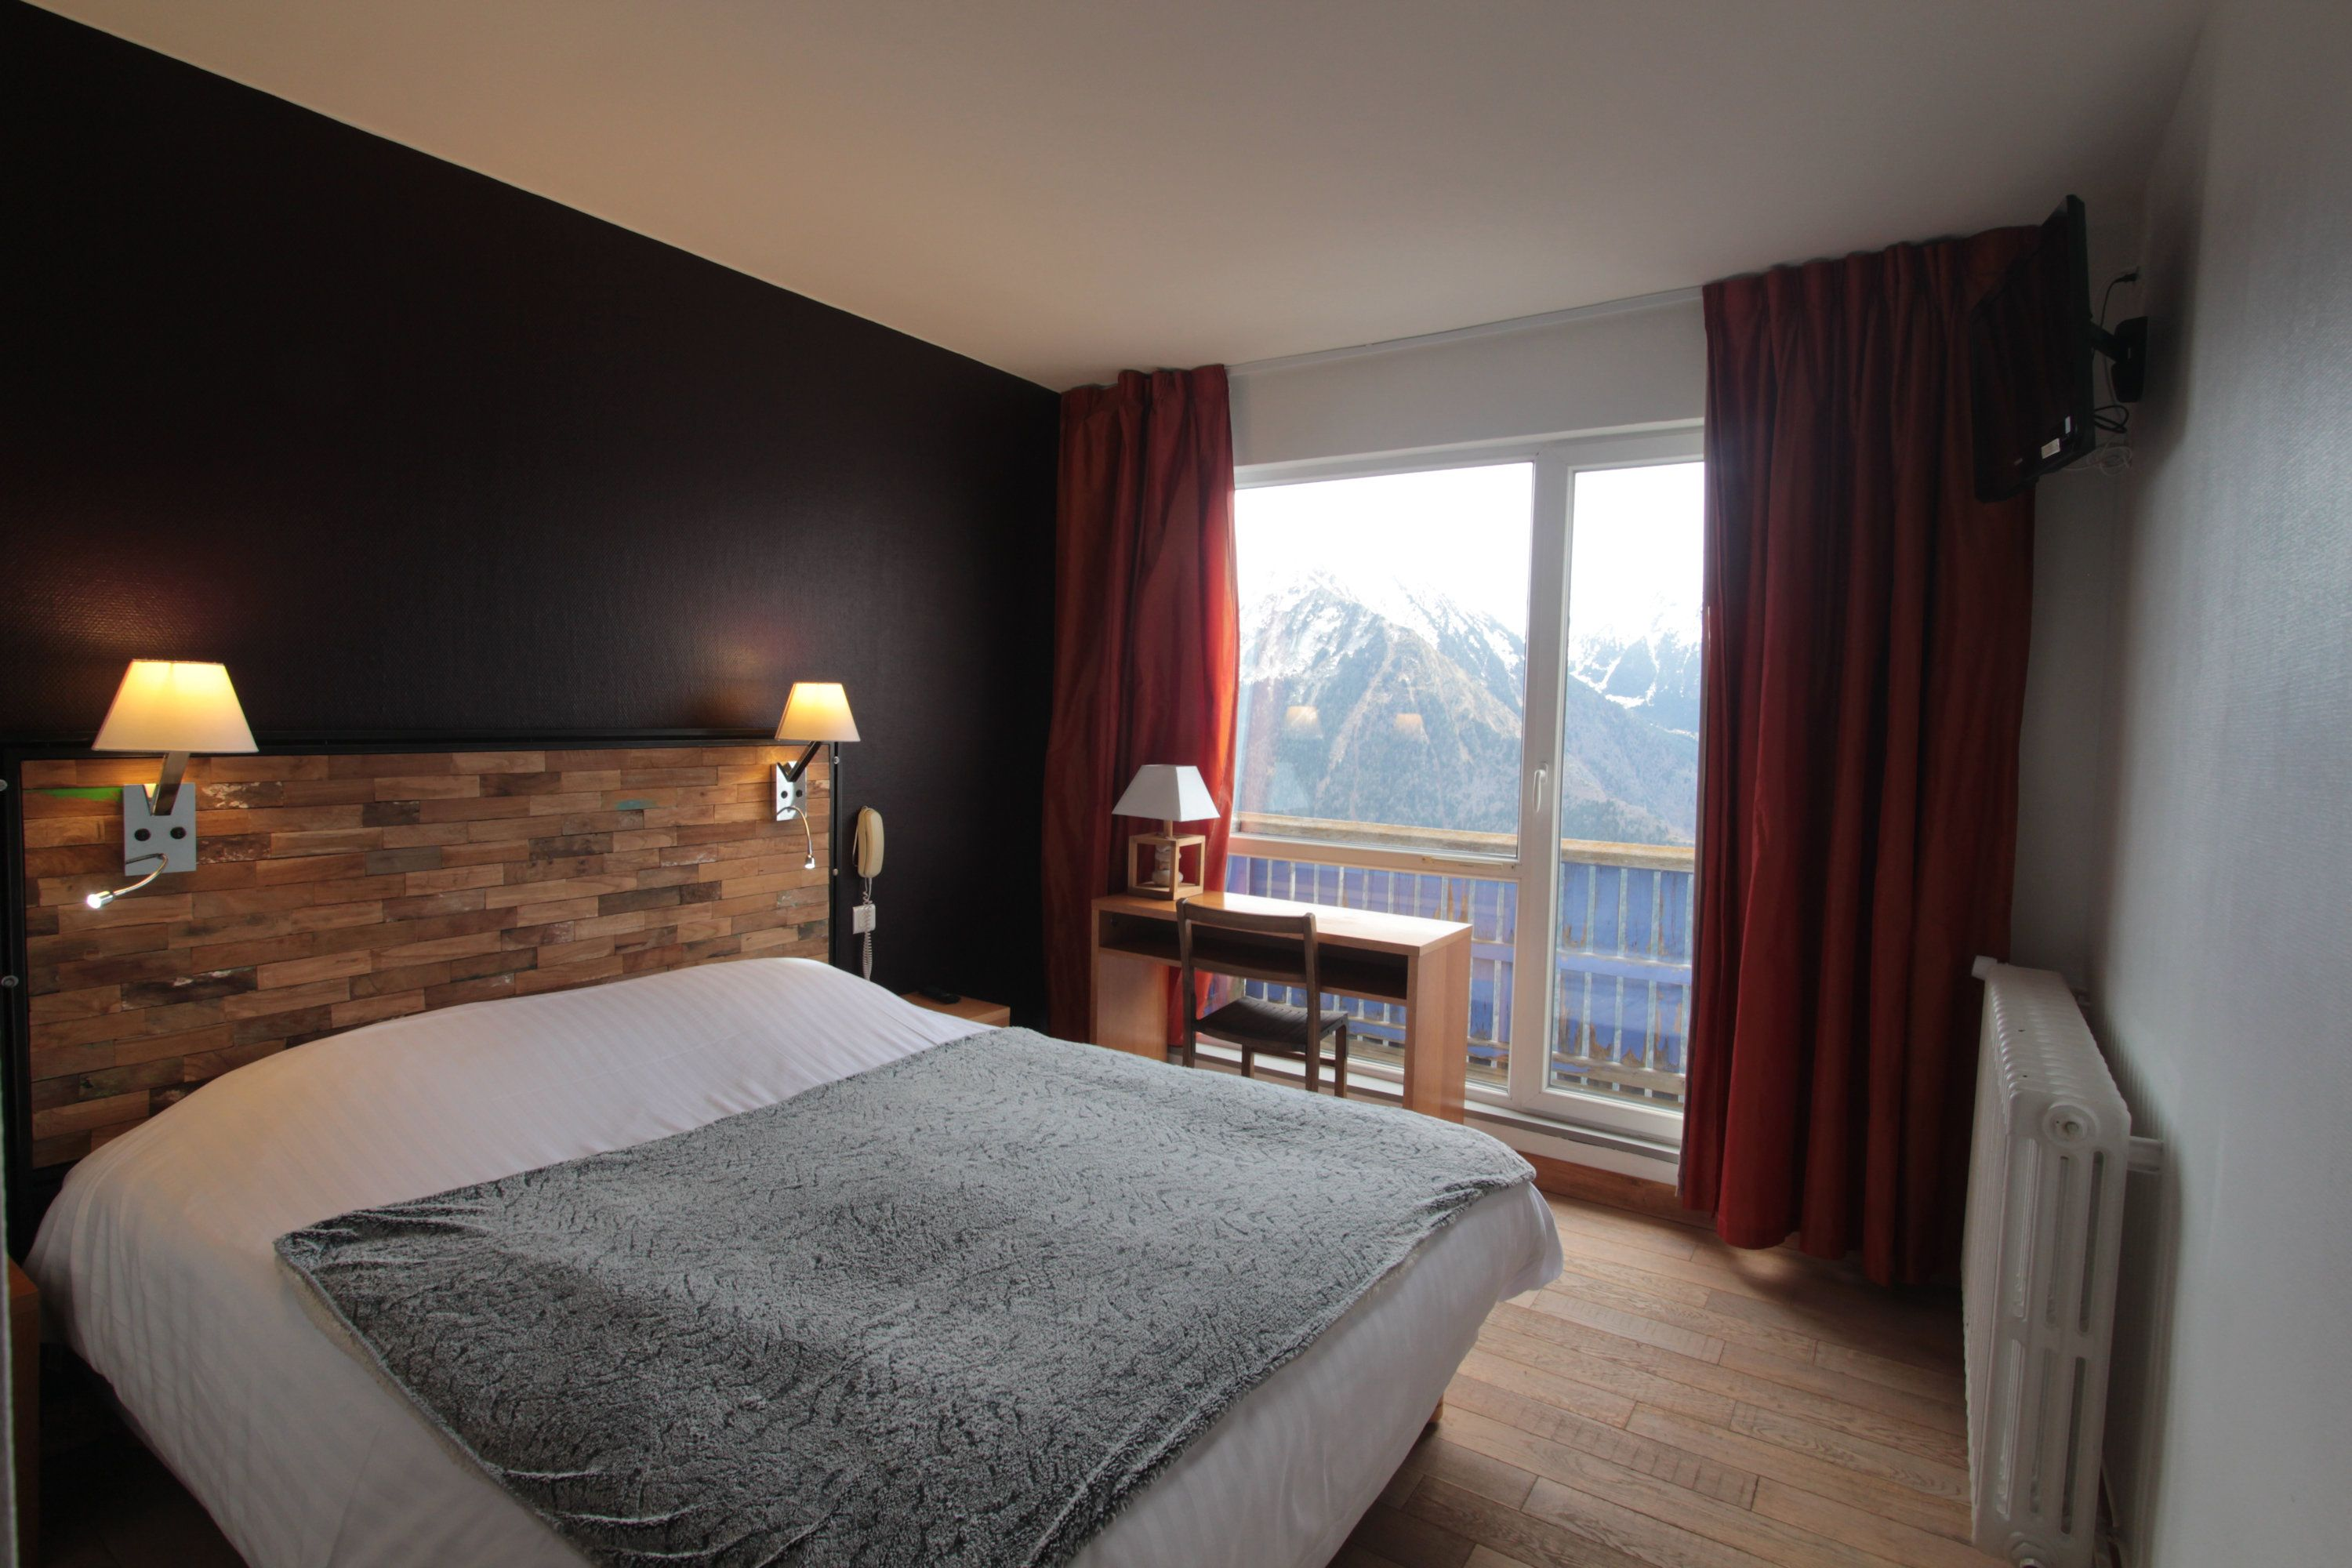 Hotel saint lary chambres du christiania h tel pyr n es for Chambre double lits jumeaux